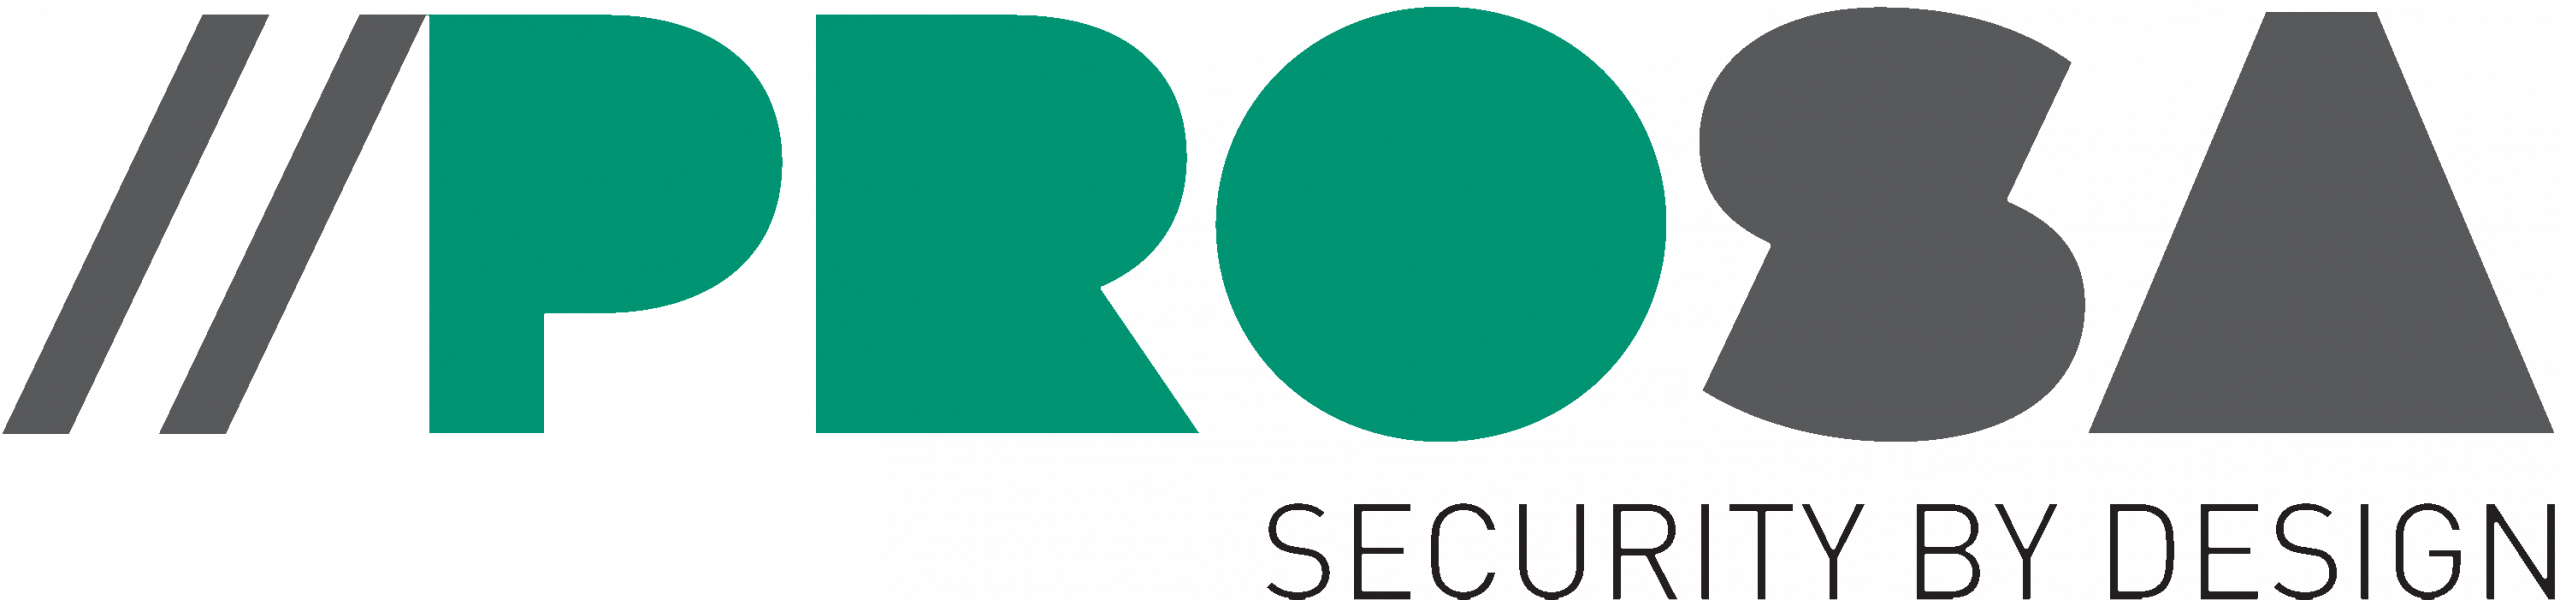 PROSA security